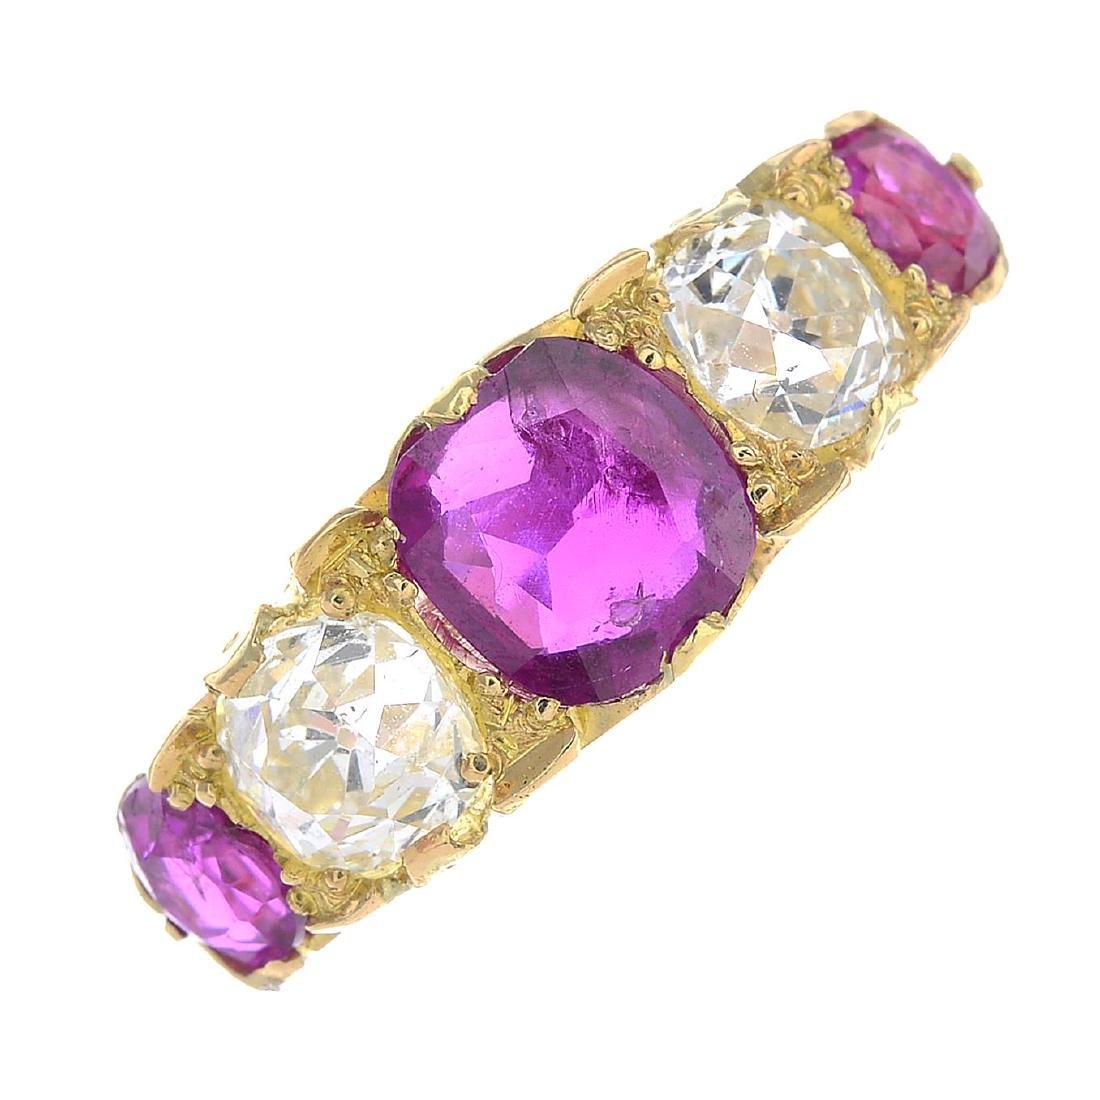 A late Victorian 18ct gold Burmese ruby and diamond